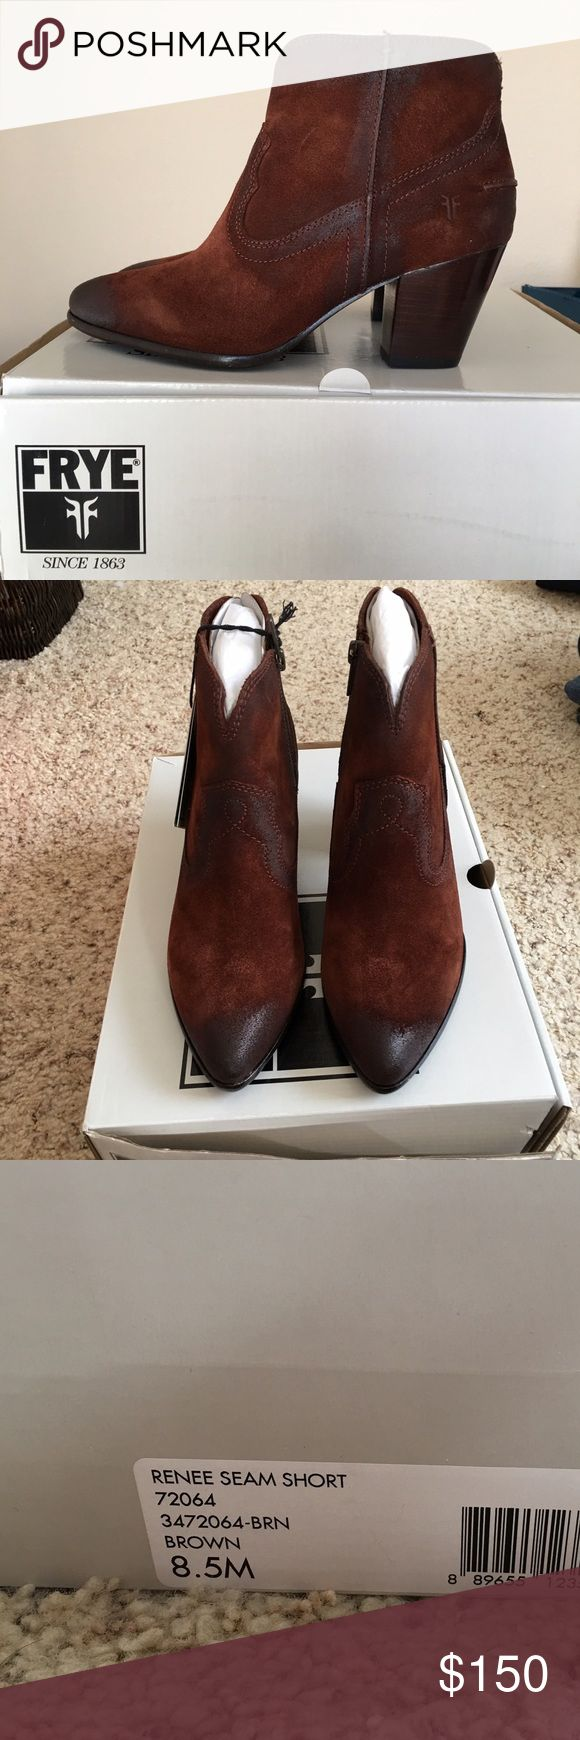 Frye Renee Seam short brown boot SZ 8.5 NWT  box New never worn - needed a bigger size and forgot to return by req date / women's Frye Renee seam short brown suede bootie with box / tags 8.5 Frye Shoes Ankle Boots & Booties